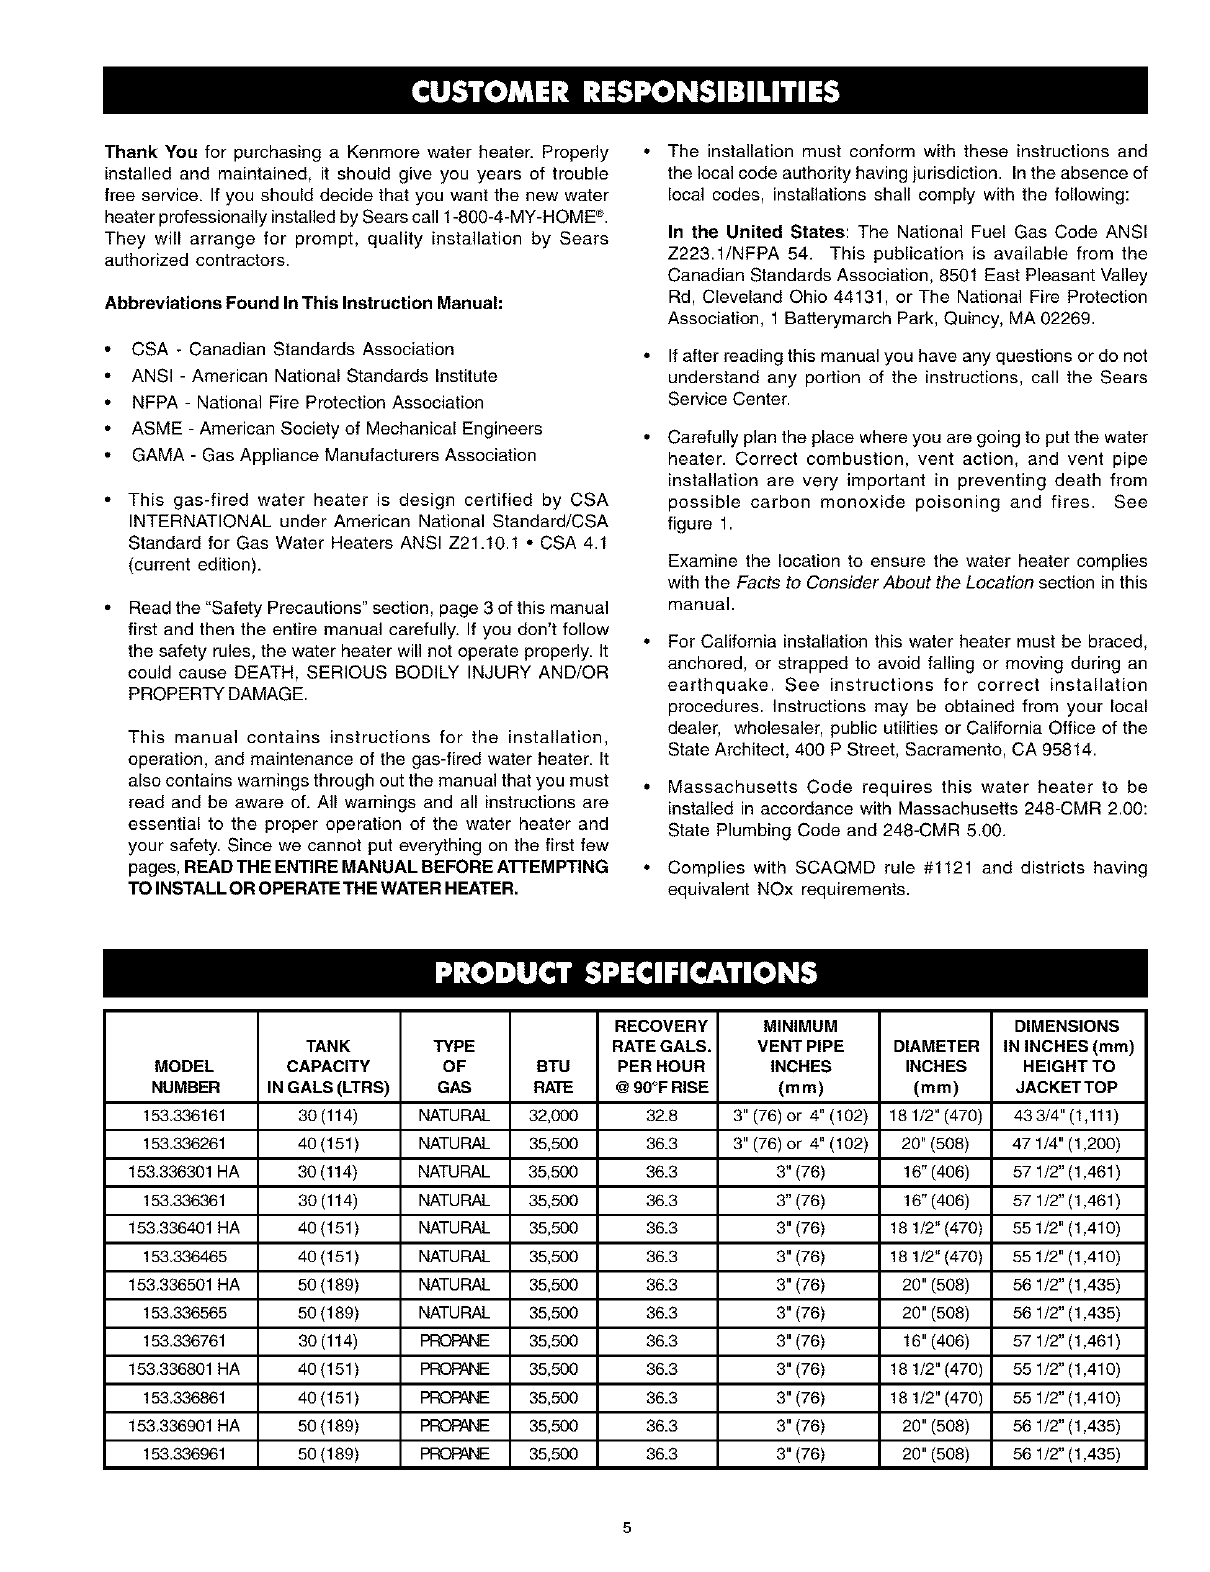 Page 5 of Kenmore Water Heater 153 336465 User Guide